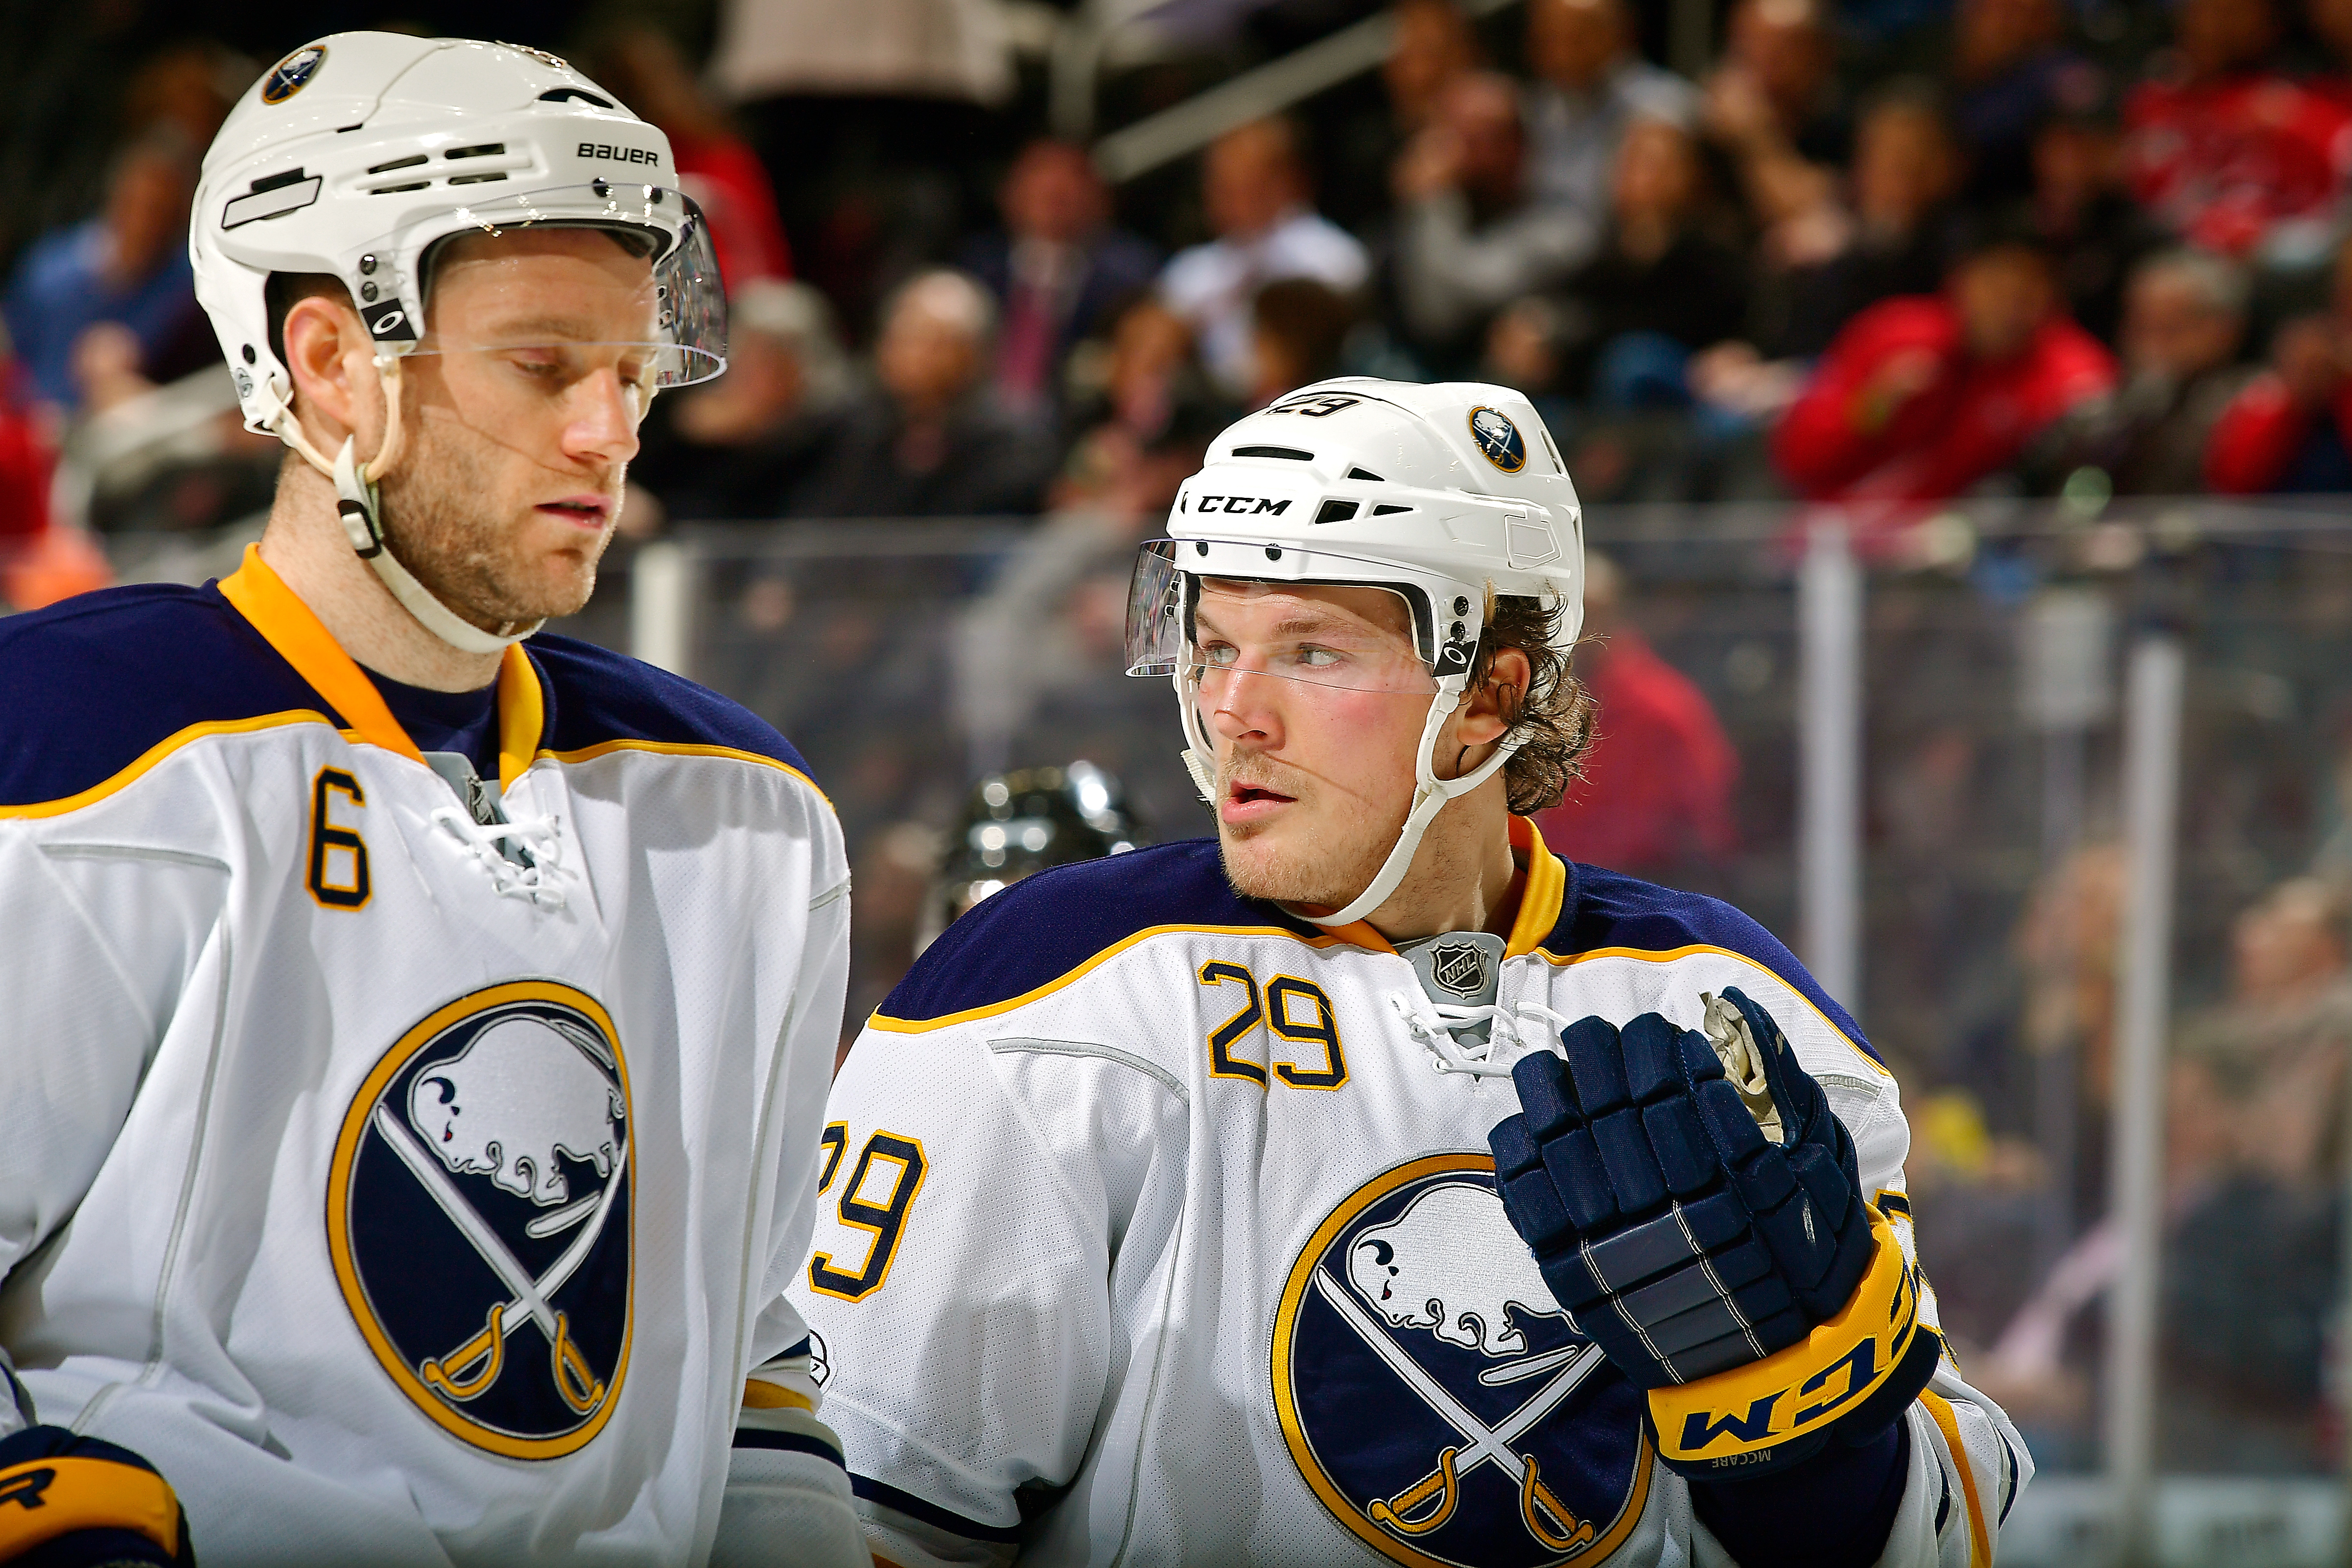 Cody Franson (6) could join Jake McCabe and the rest of Buffalo's defensemen Saturday. (Getty Images)